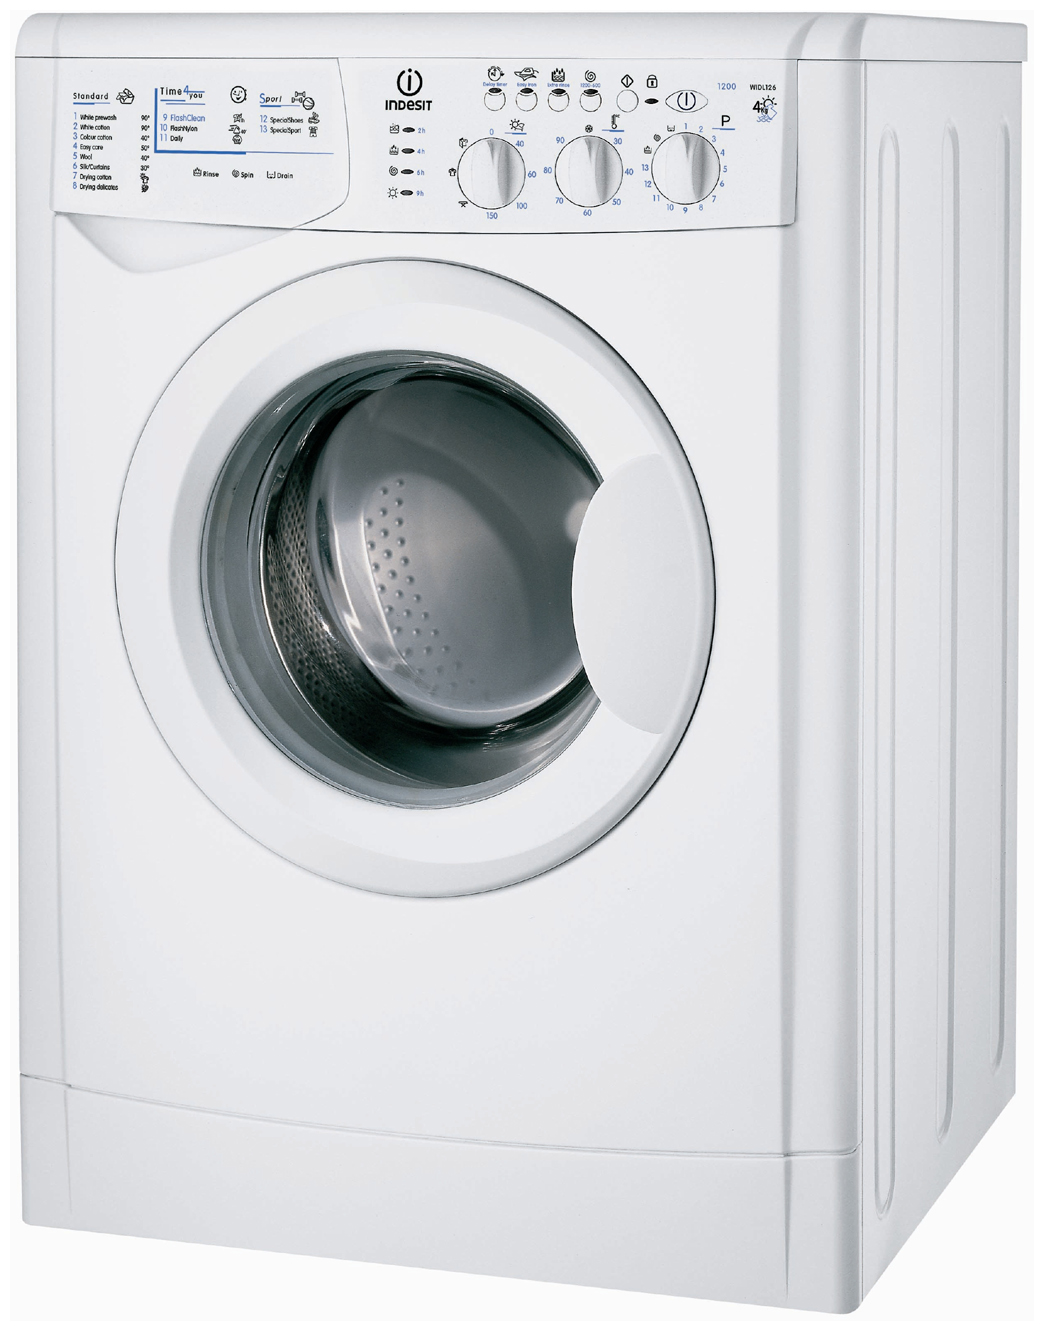 mda washing machines repairs spares new machines liverpool merseyside indesit iwdc6125